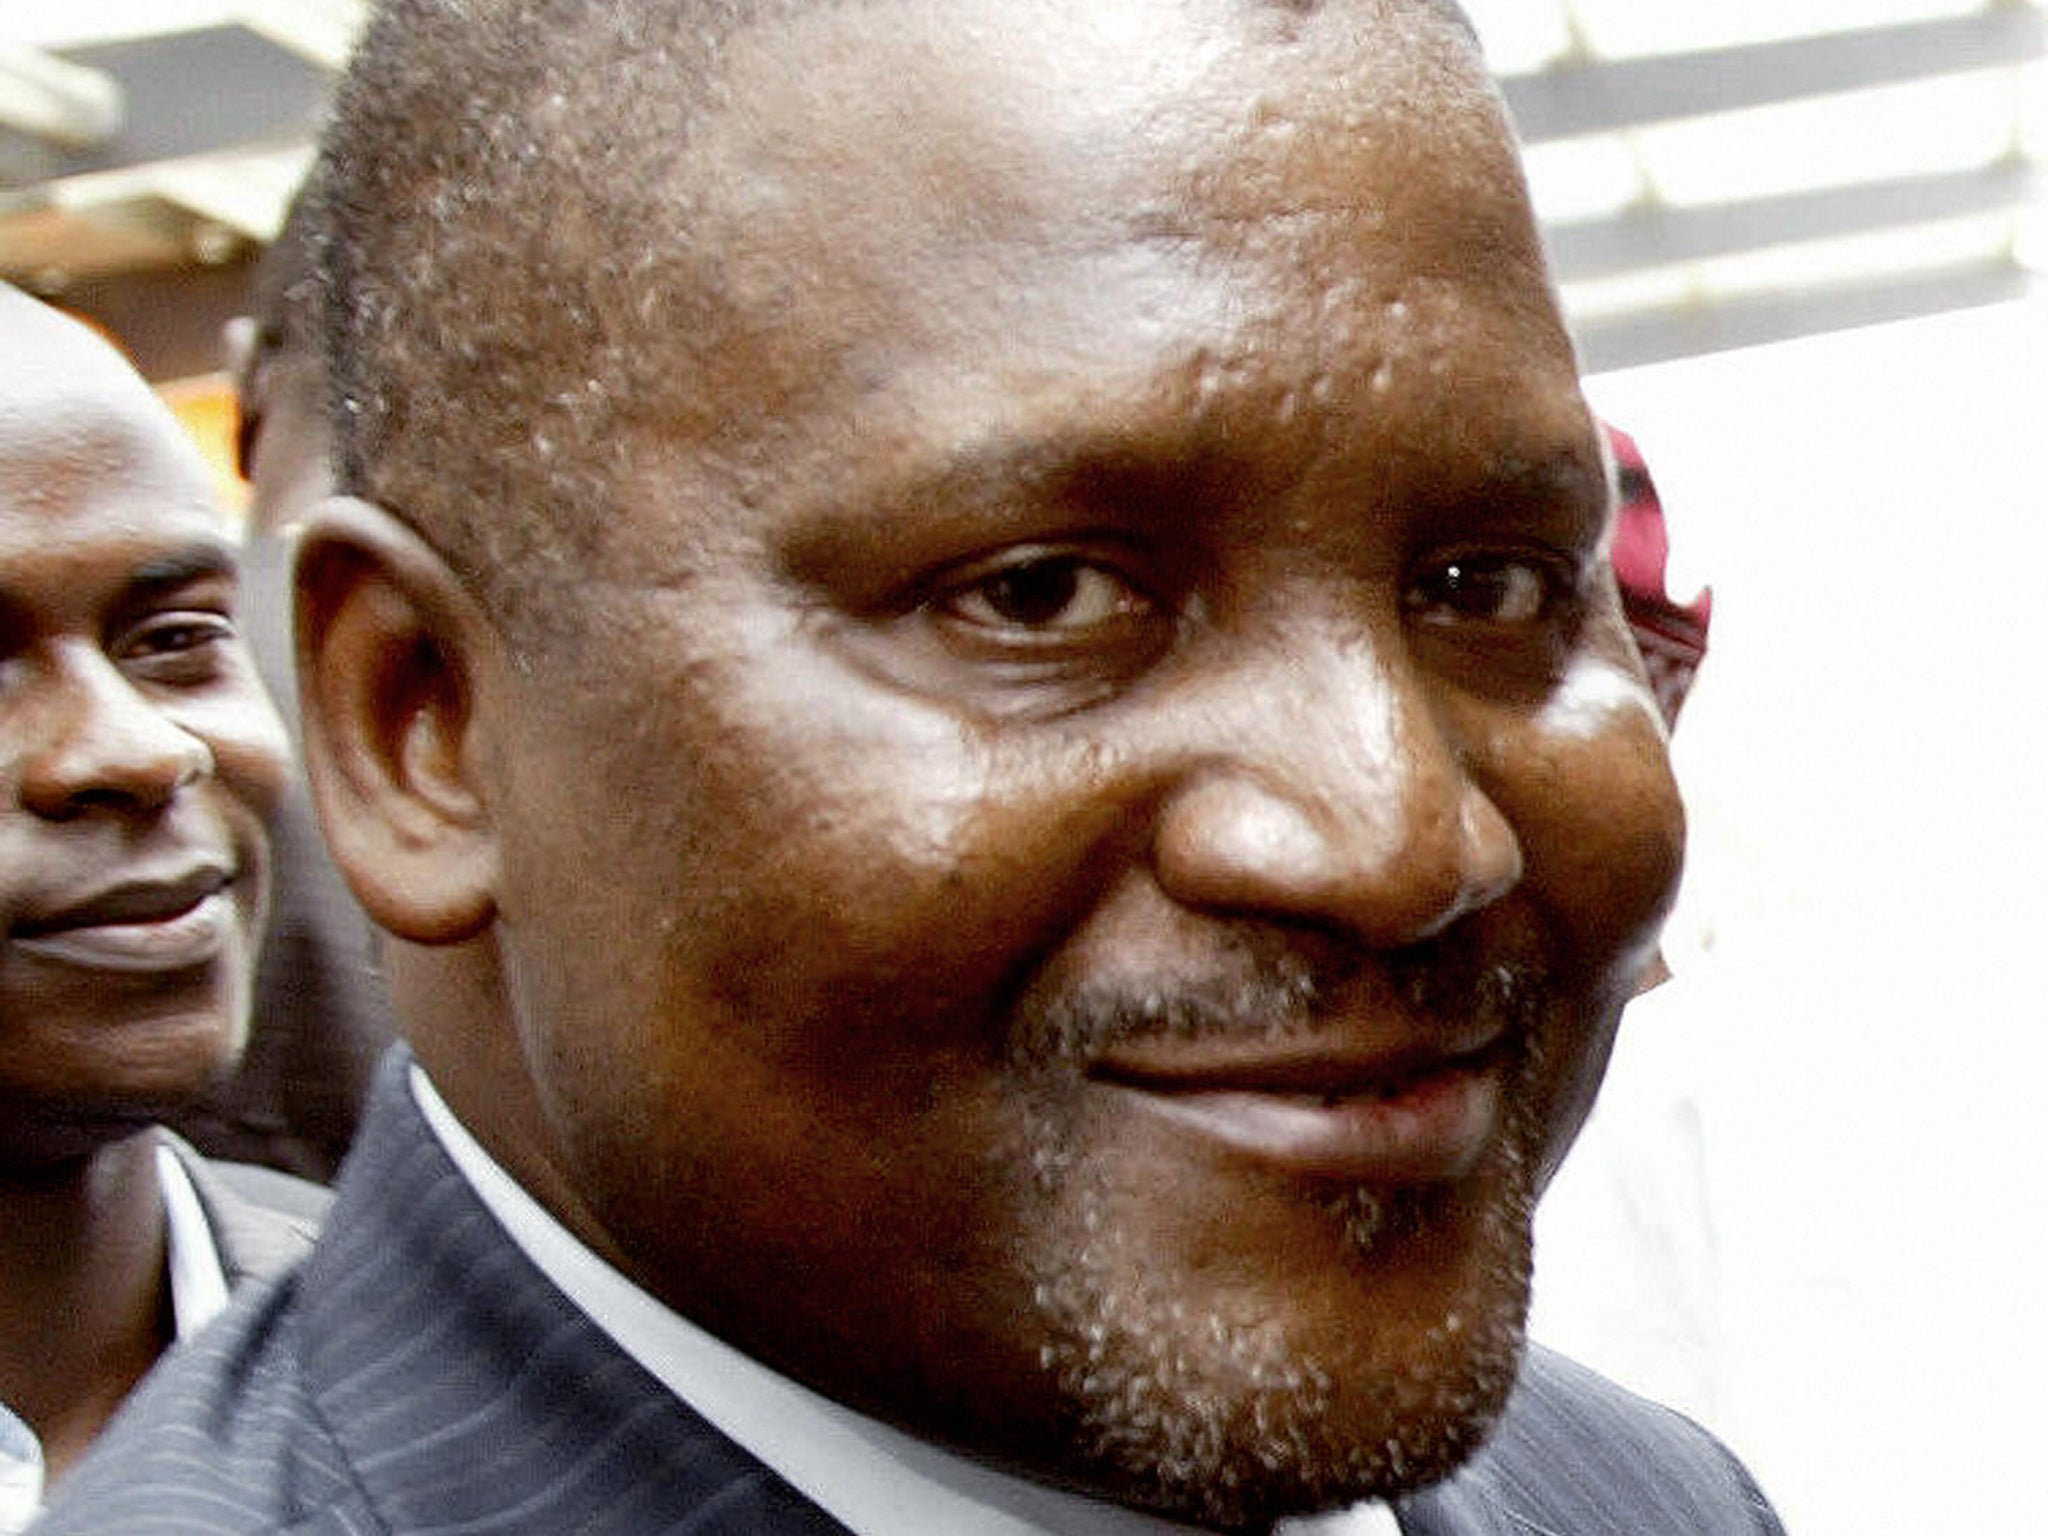 Africa's richest man says he withdrew $10m from bank 'just to look